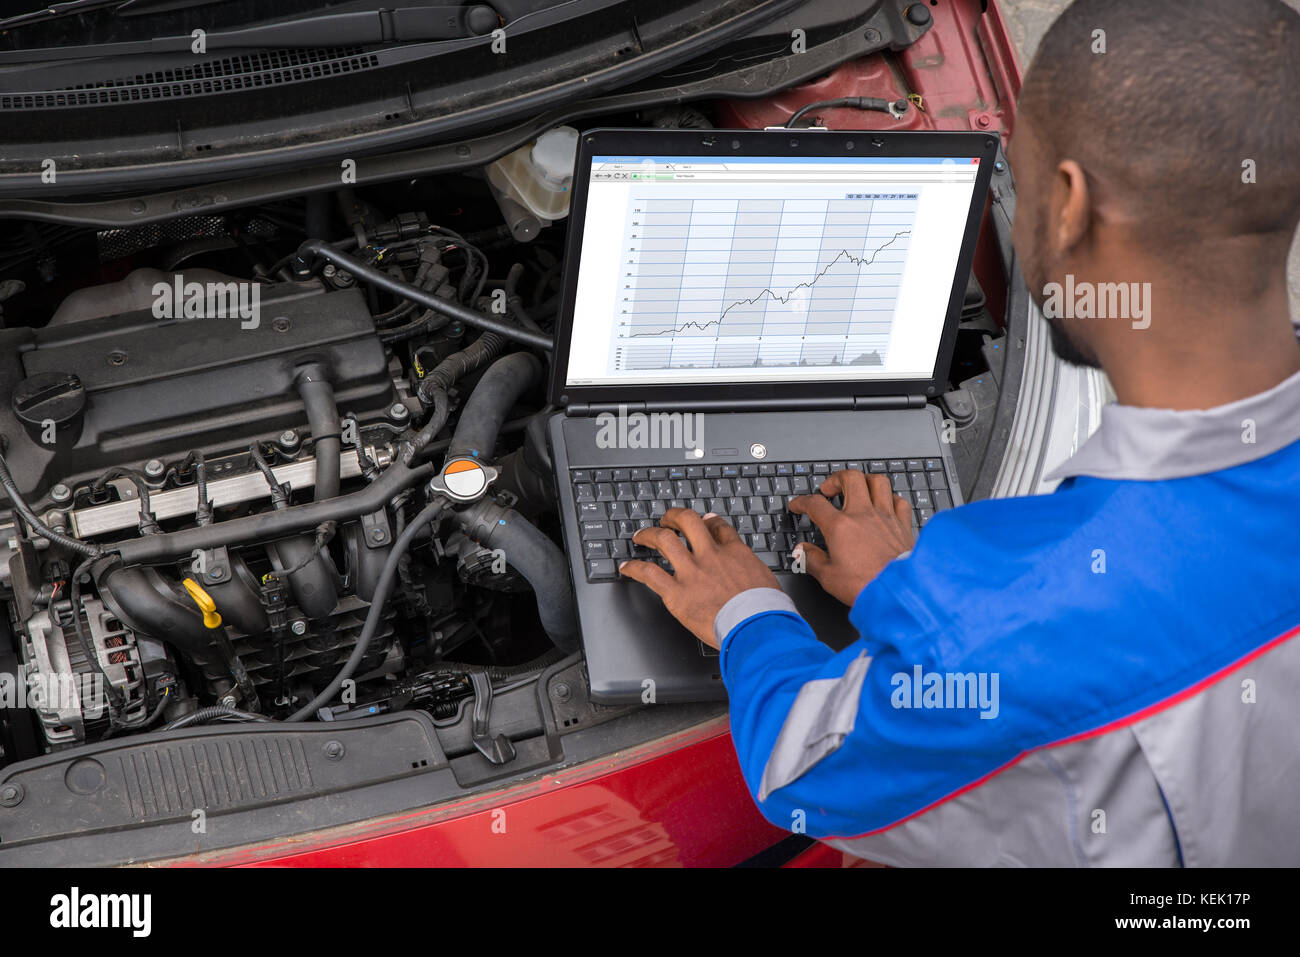 Young Male Mechanic Using Laptop While Examining Car Engine - Stock Image